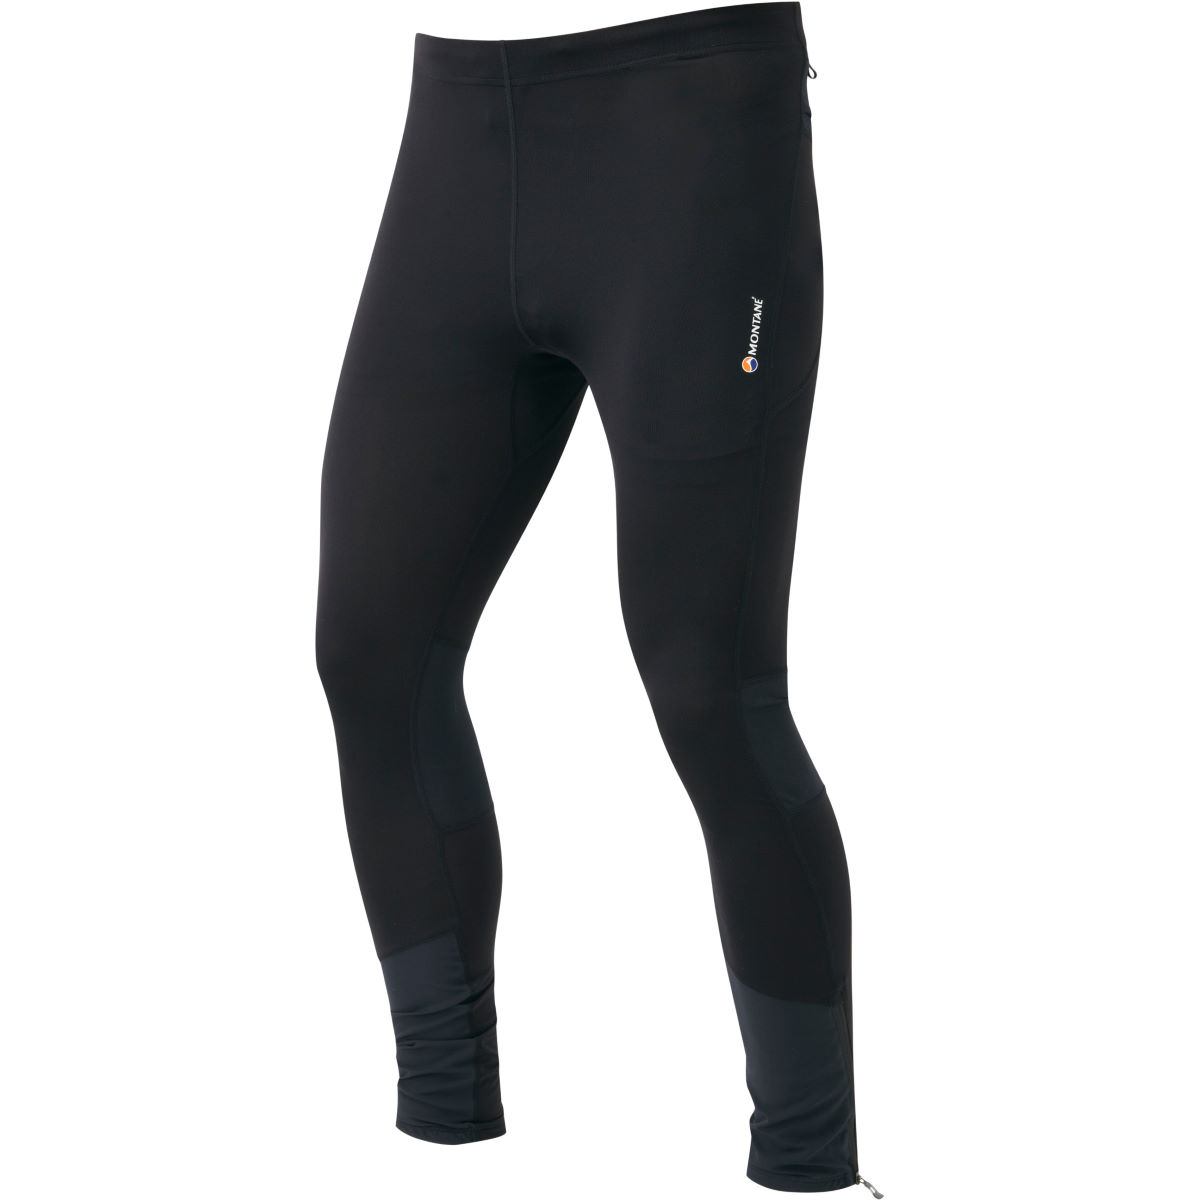 Montane Trail Series Long Tight (AW16) - Extra Large Black